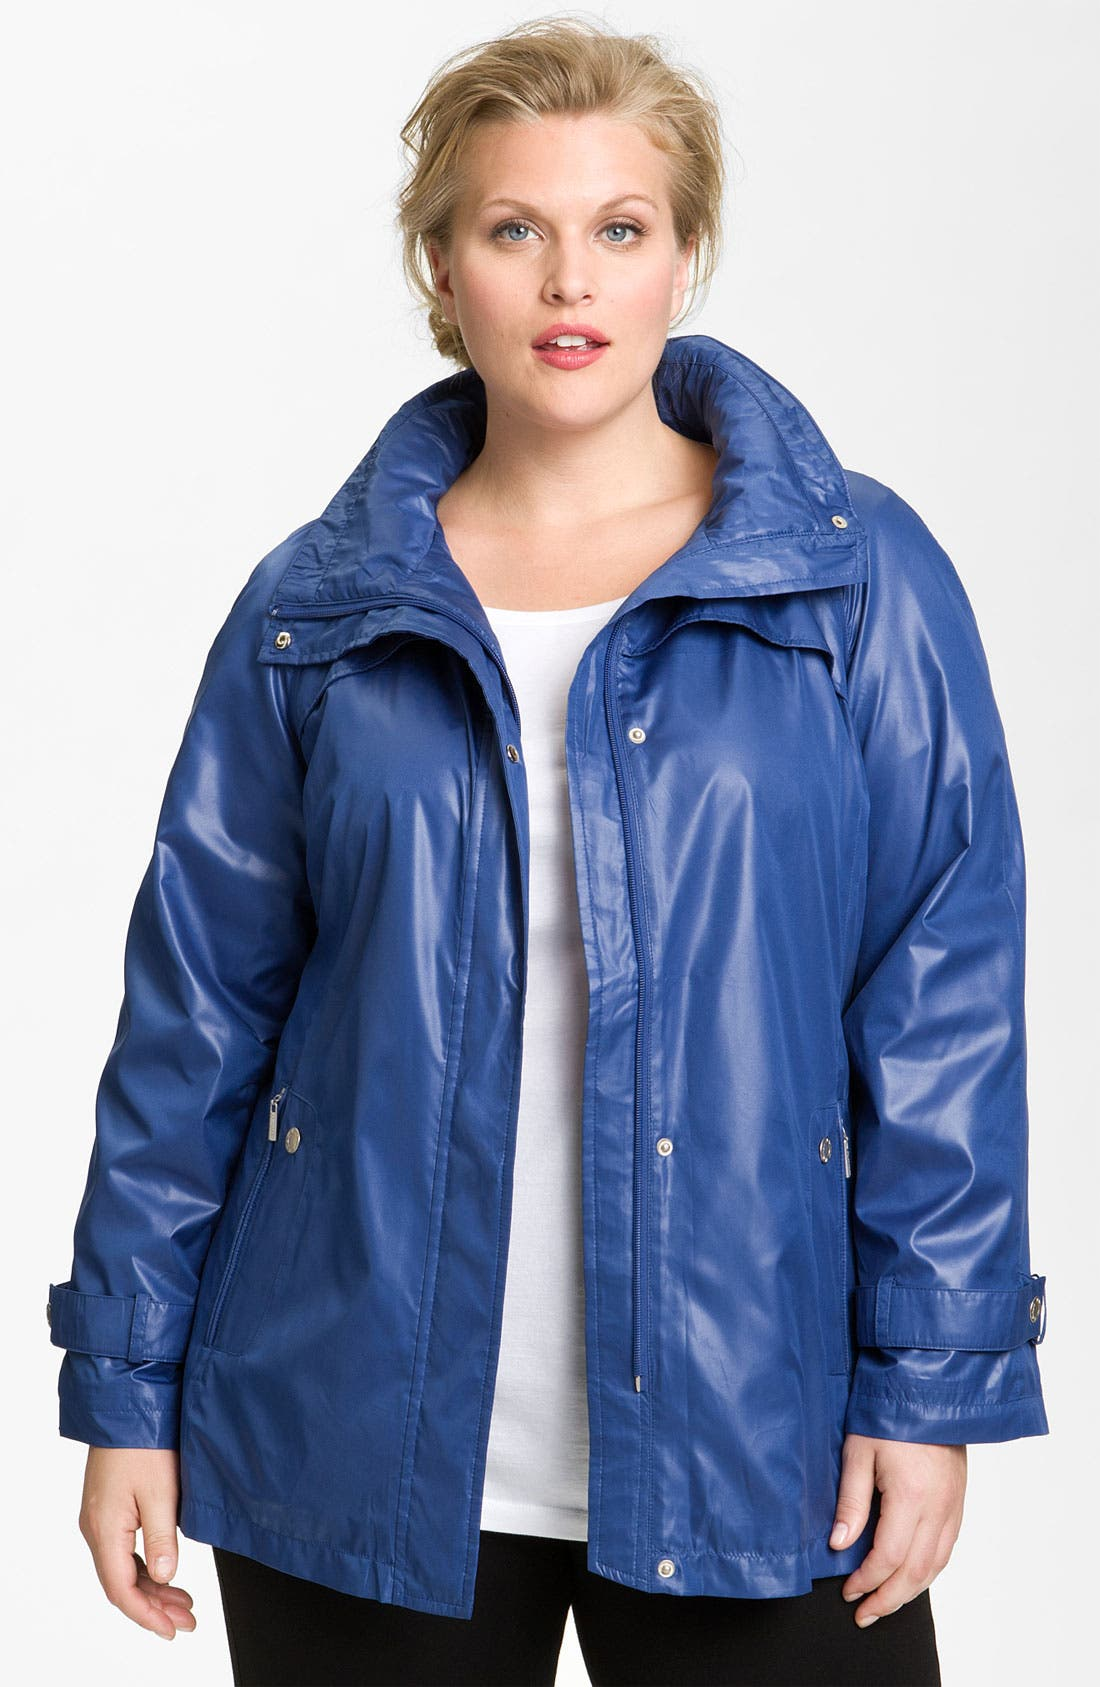 Alternate Image 1 Selected - Platinum Utex Ultra Lightweight Water Repellent Jacket (Plus)